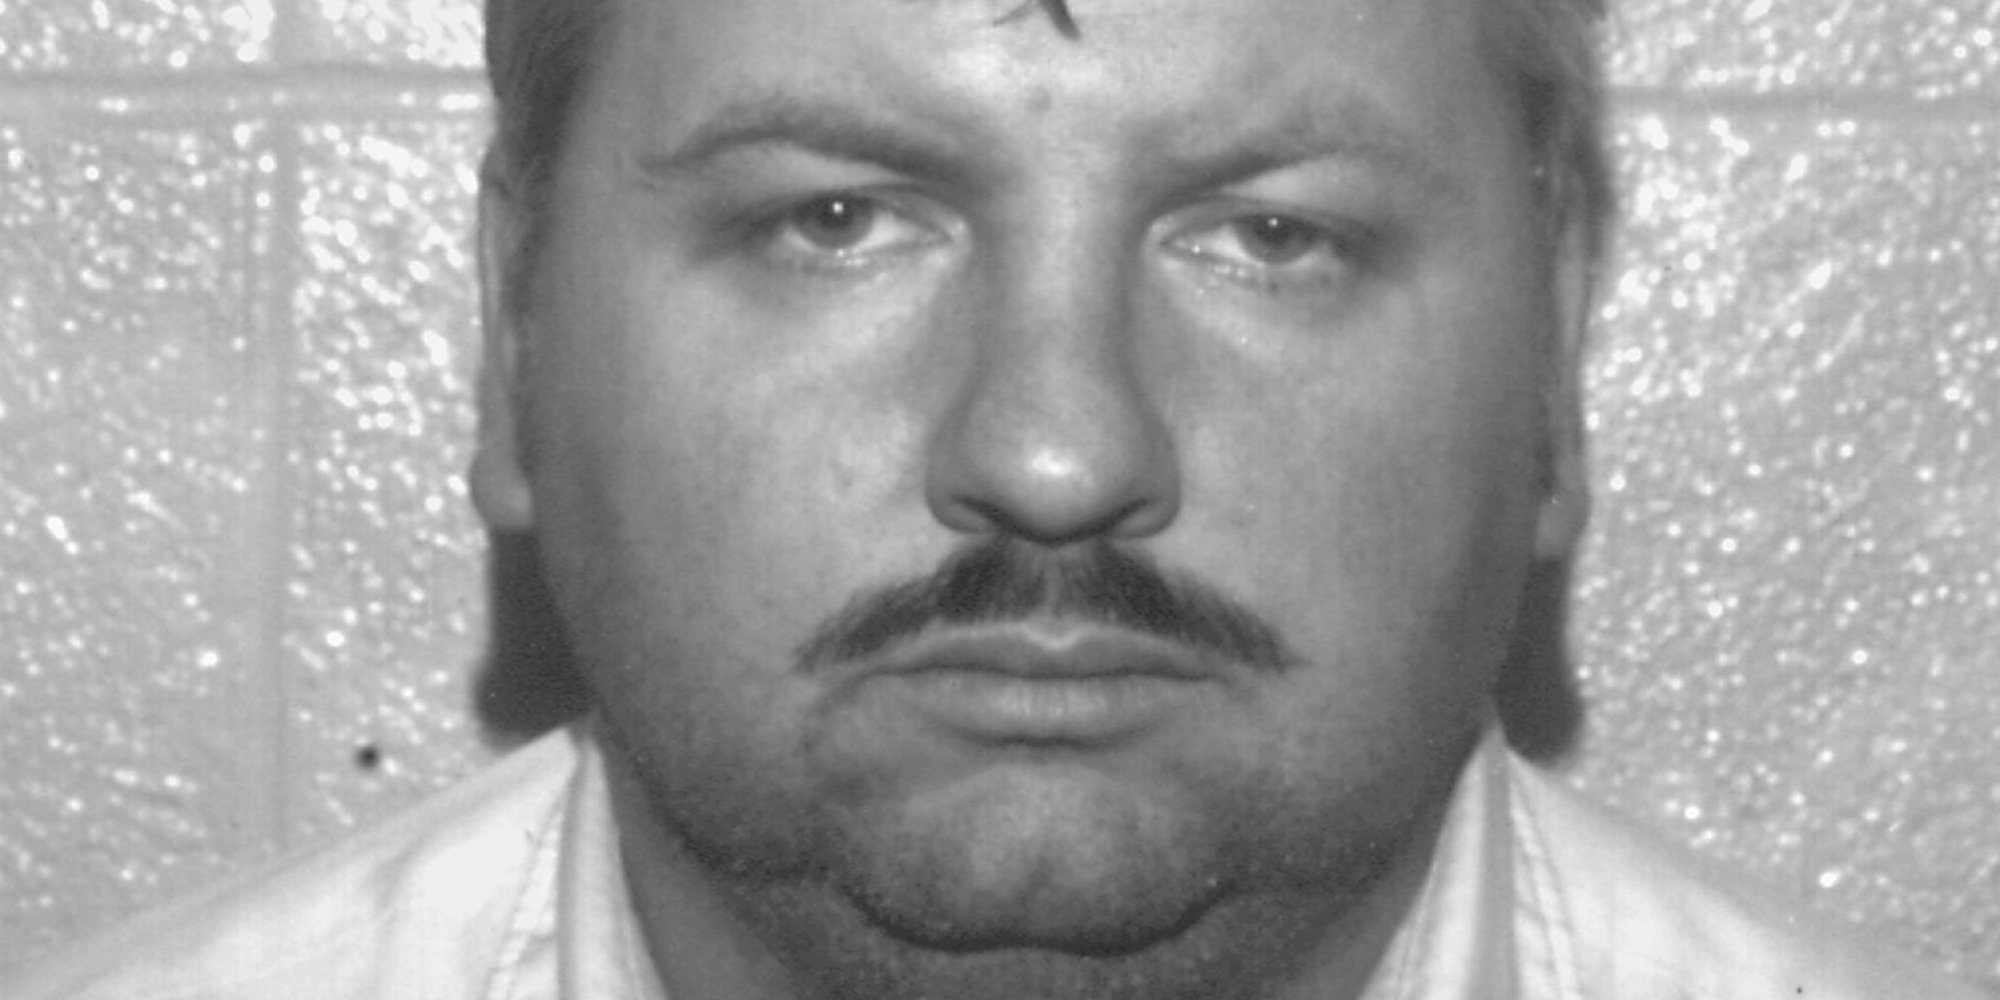 FILE PHOTO -- This is John Wayne Gacy's police arrest photo from Dec. 21, 1978. Following intensive research, investigation and surveillance, Gacy was arrested by the Des Plaines (Ill.) Police Department on Thursday, Dec. 21, 1978. After being charged with and serving time for 33 murders, Gacy was executed in 1994 by lethal injection. Today, Monday, Nov. 23, 1998, technicians began preliminary work on a possible excavation at an apartment building on Chicago's Northwest Side in search of as many as four more possible victims of the mass murderer. The apartment building at one time, was the home of Gacy's mother, and Gacy had done some construction work there. The information regarding the location was recently released from a retired Chicago police officer who said he had seen Gacy carrying a shovel near the area at about 3 a.m. one day in 1975. The former officer reportedly thought little of the Gacy sighting until three years later, when Gacy was charged with 33 murders. The apartment building is about four miles away from Gacy's house. (Des Plaines Police Department, Tim Boyle)